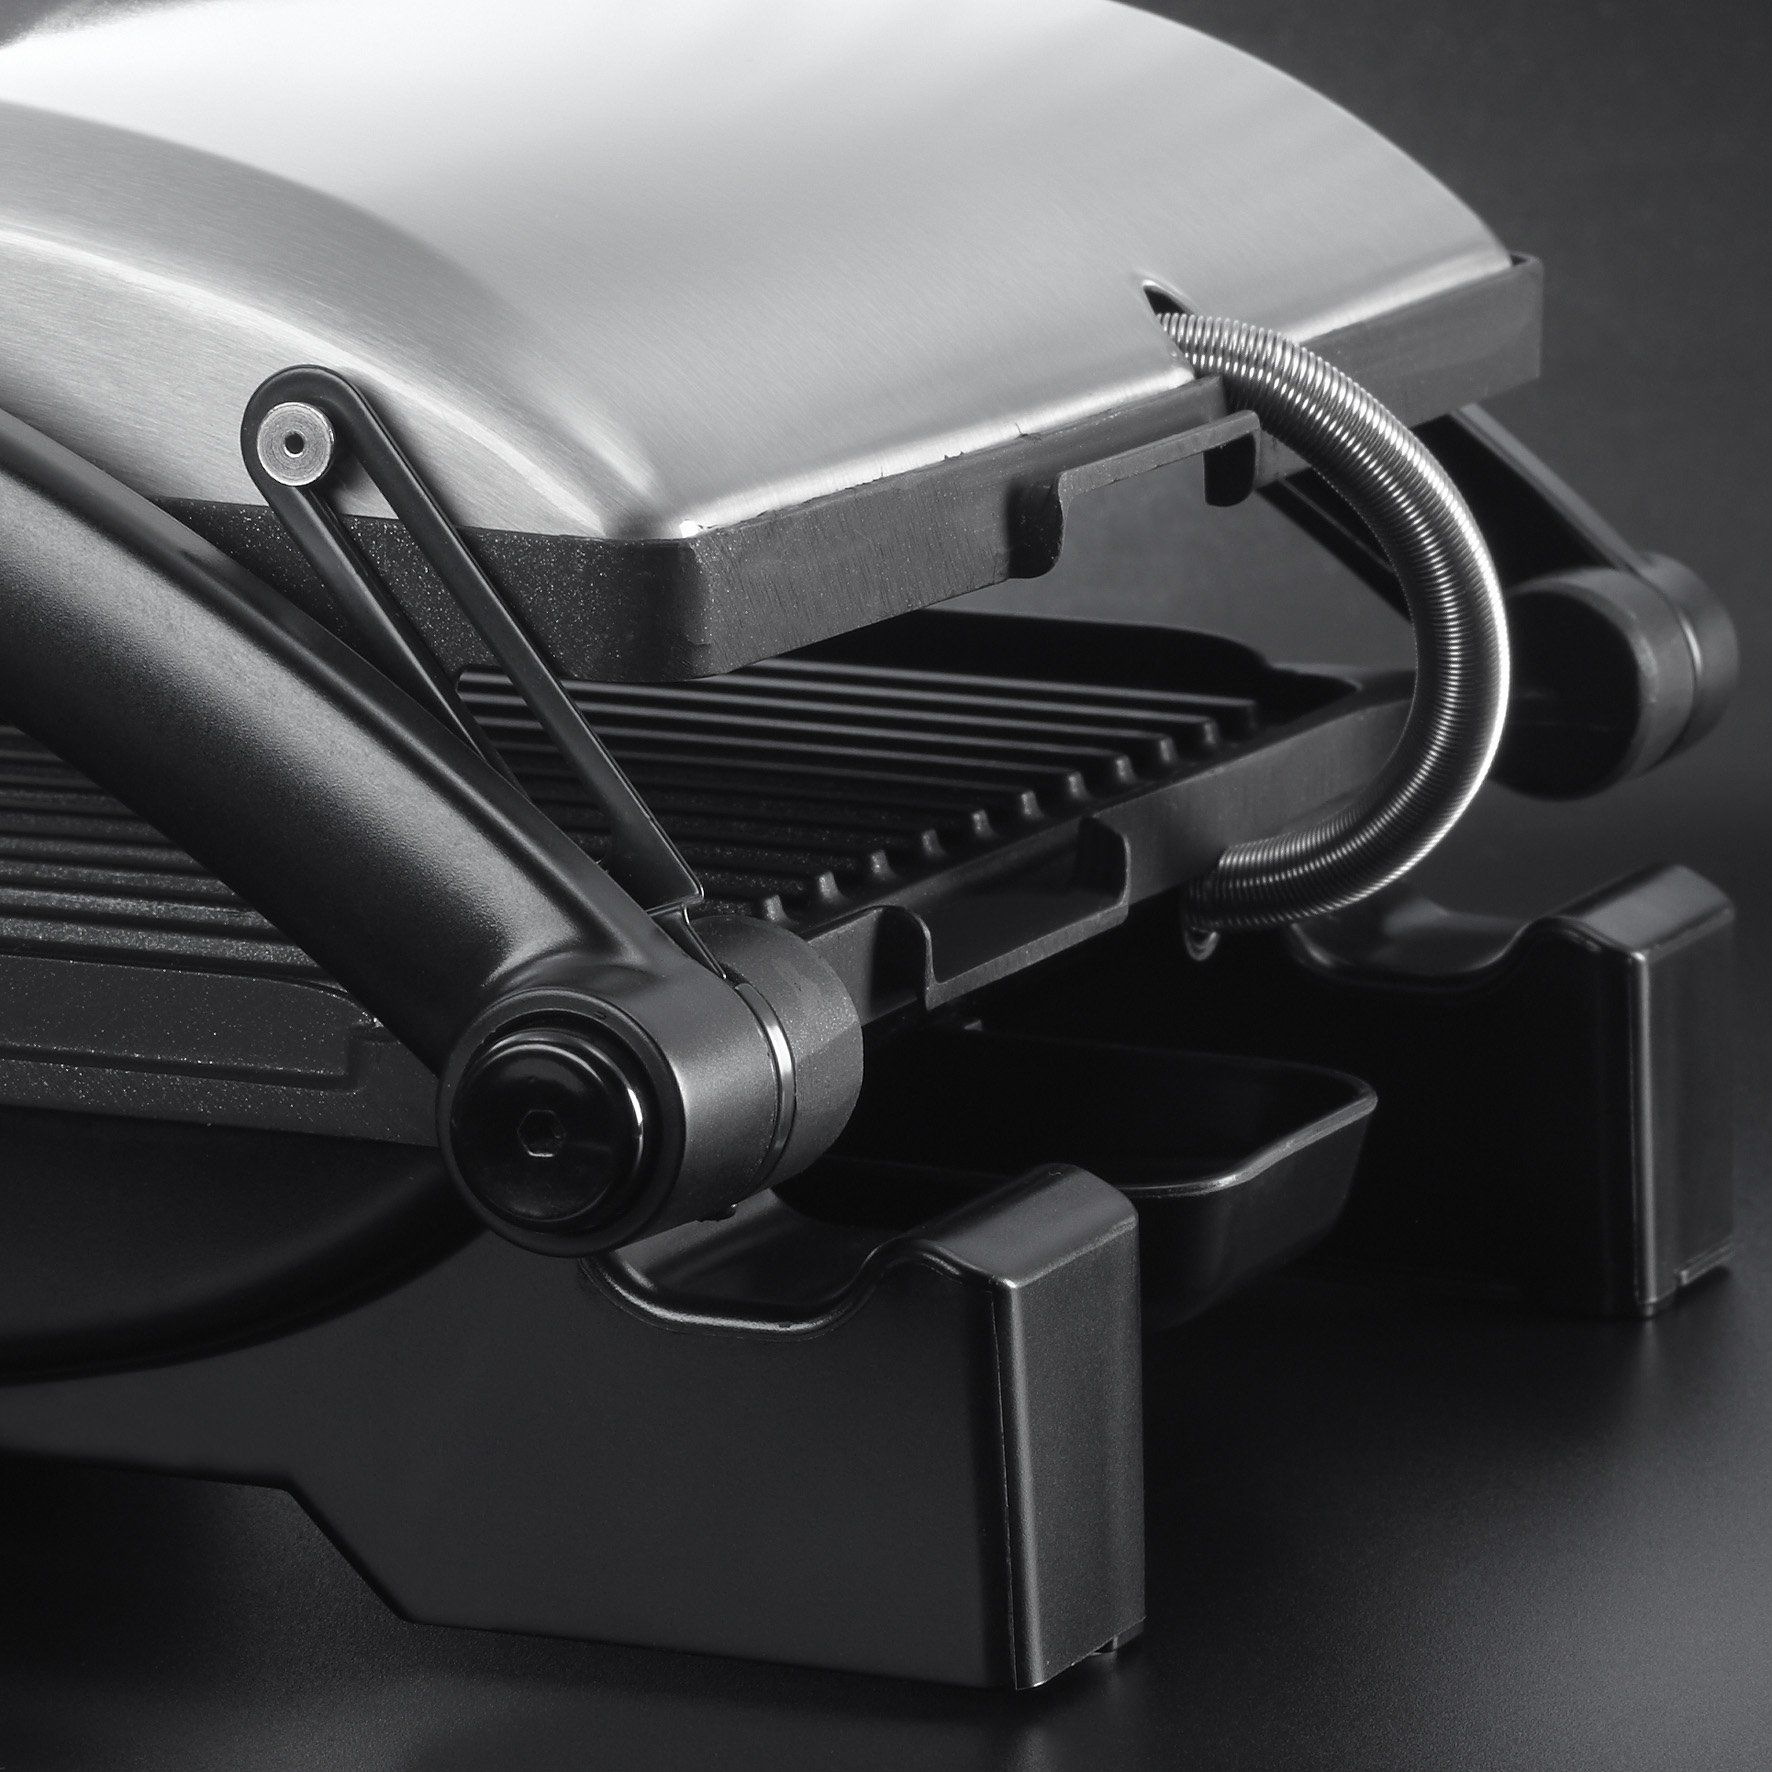 Russell Hobbs 3 in 1 Panini / Grill & Gridle Silver